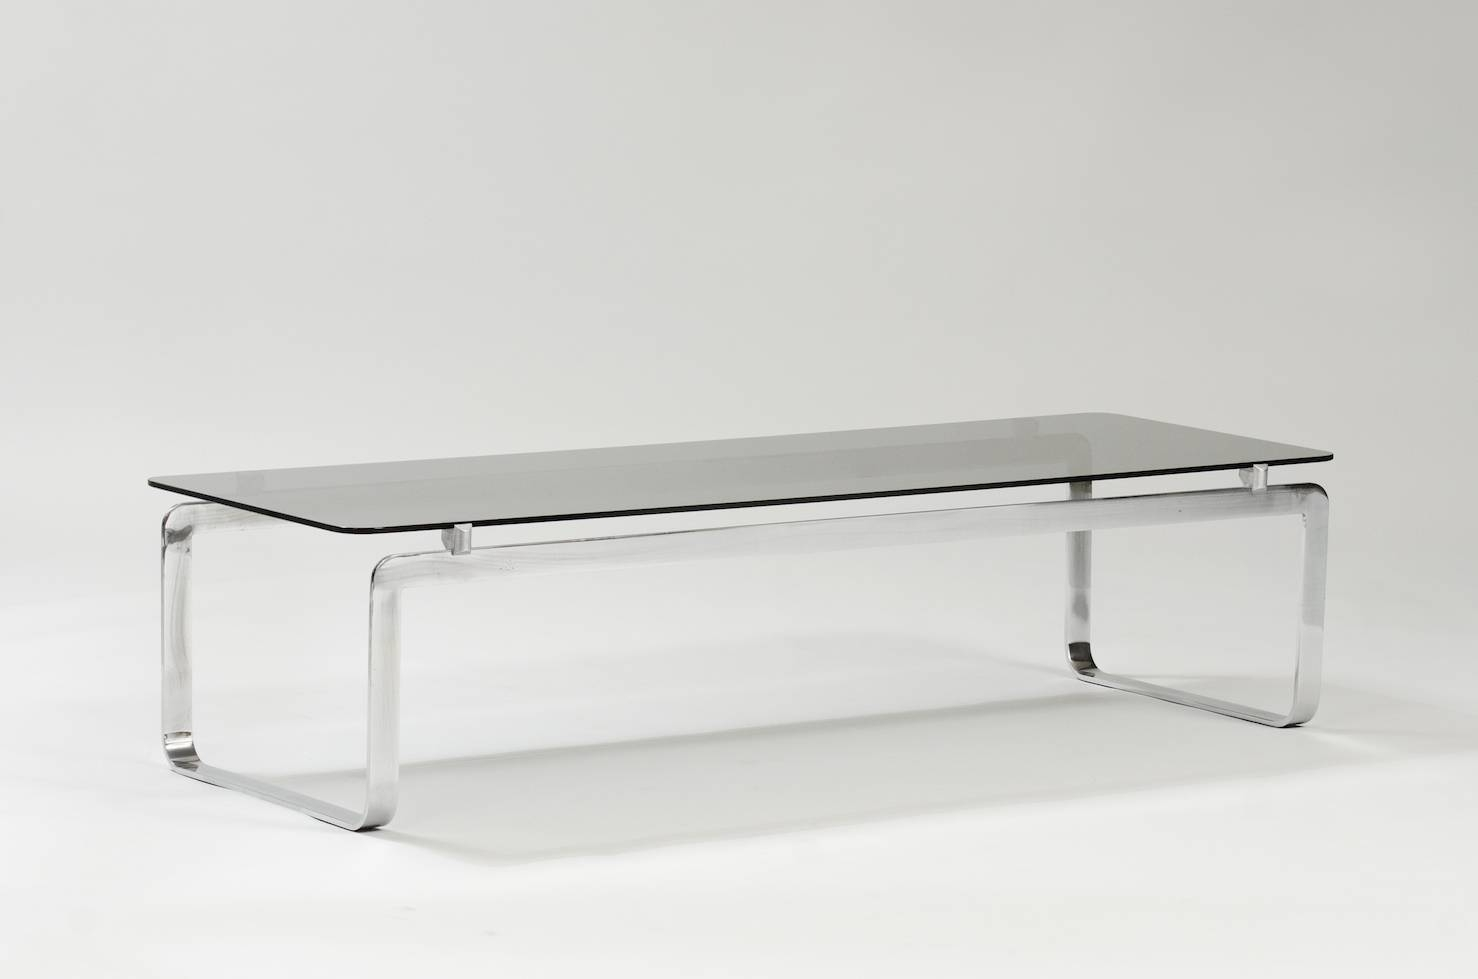 Italian Coffee Table In Chrome And Smoked Glass For Sale At Pamono with Italian Coffee Tables (Image 6 of 15)